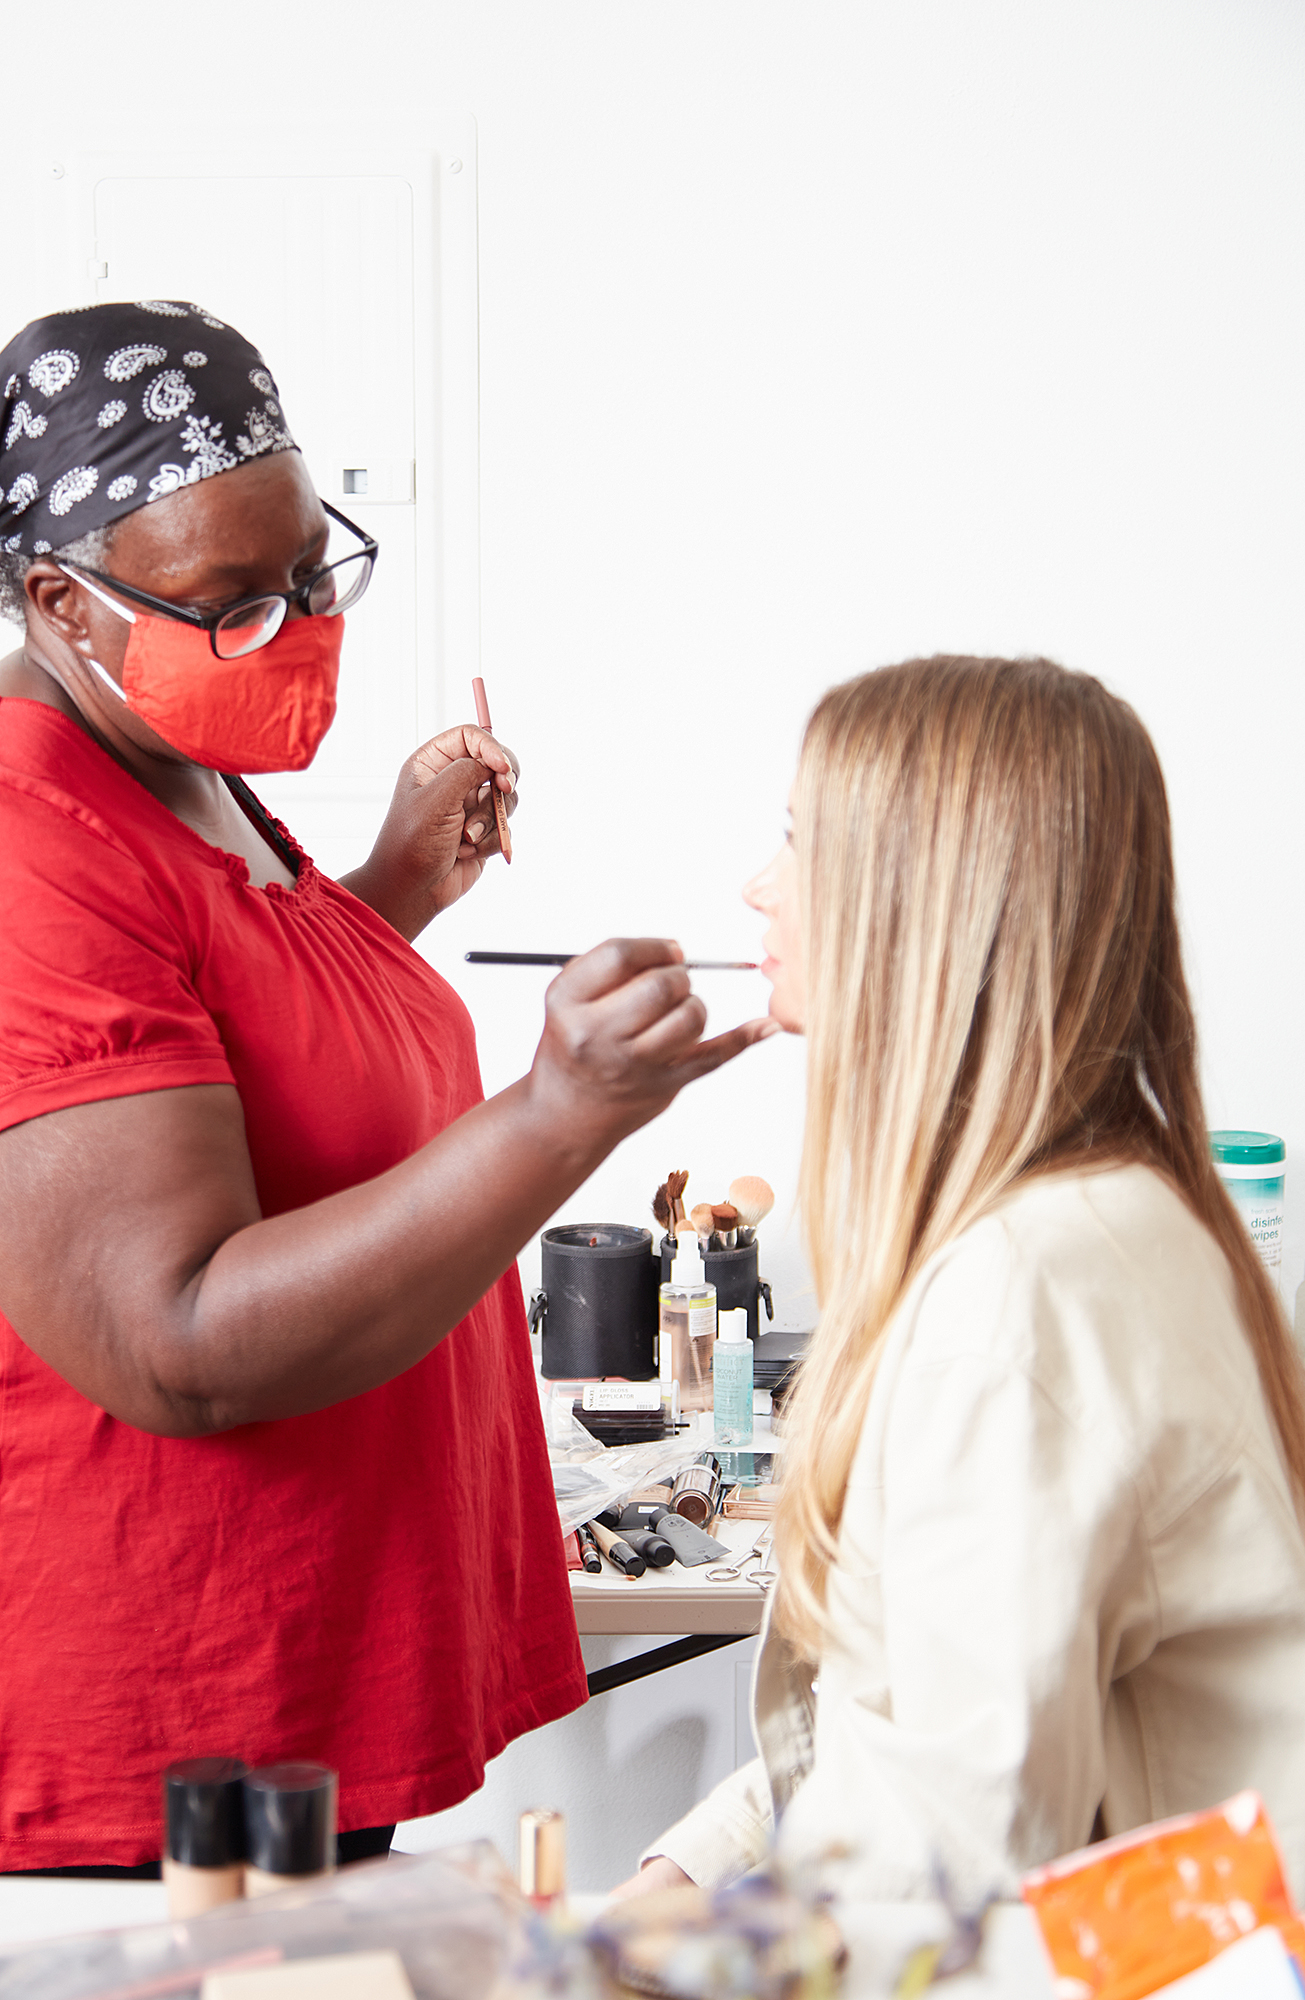 makeup to go blog tania d Russell makeup educator Los Angeles San Francisco behind the scenes